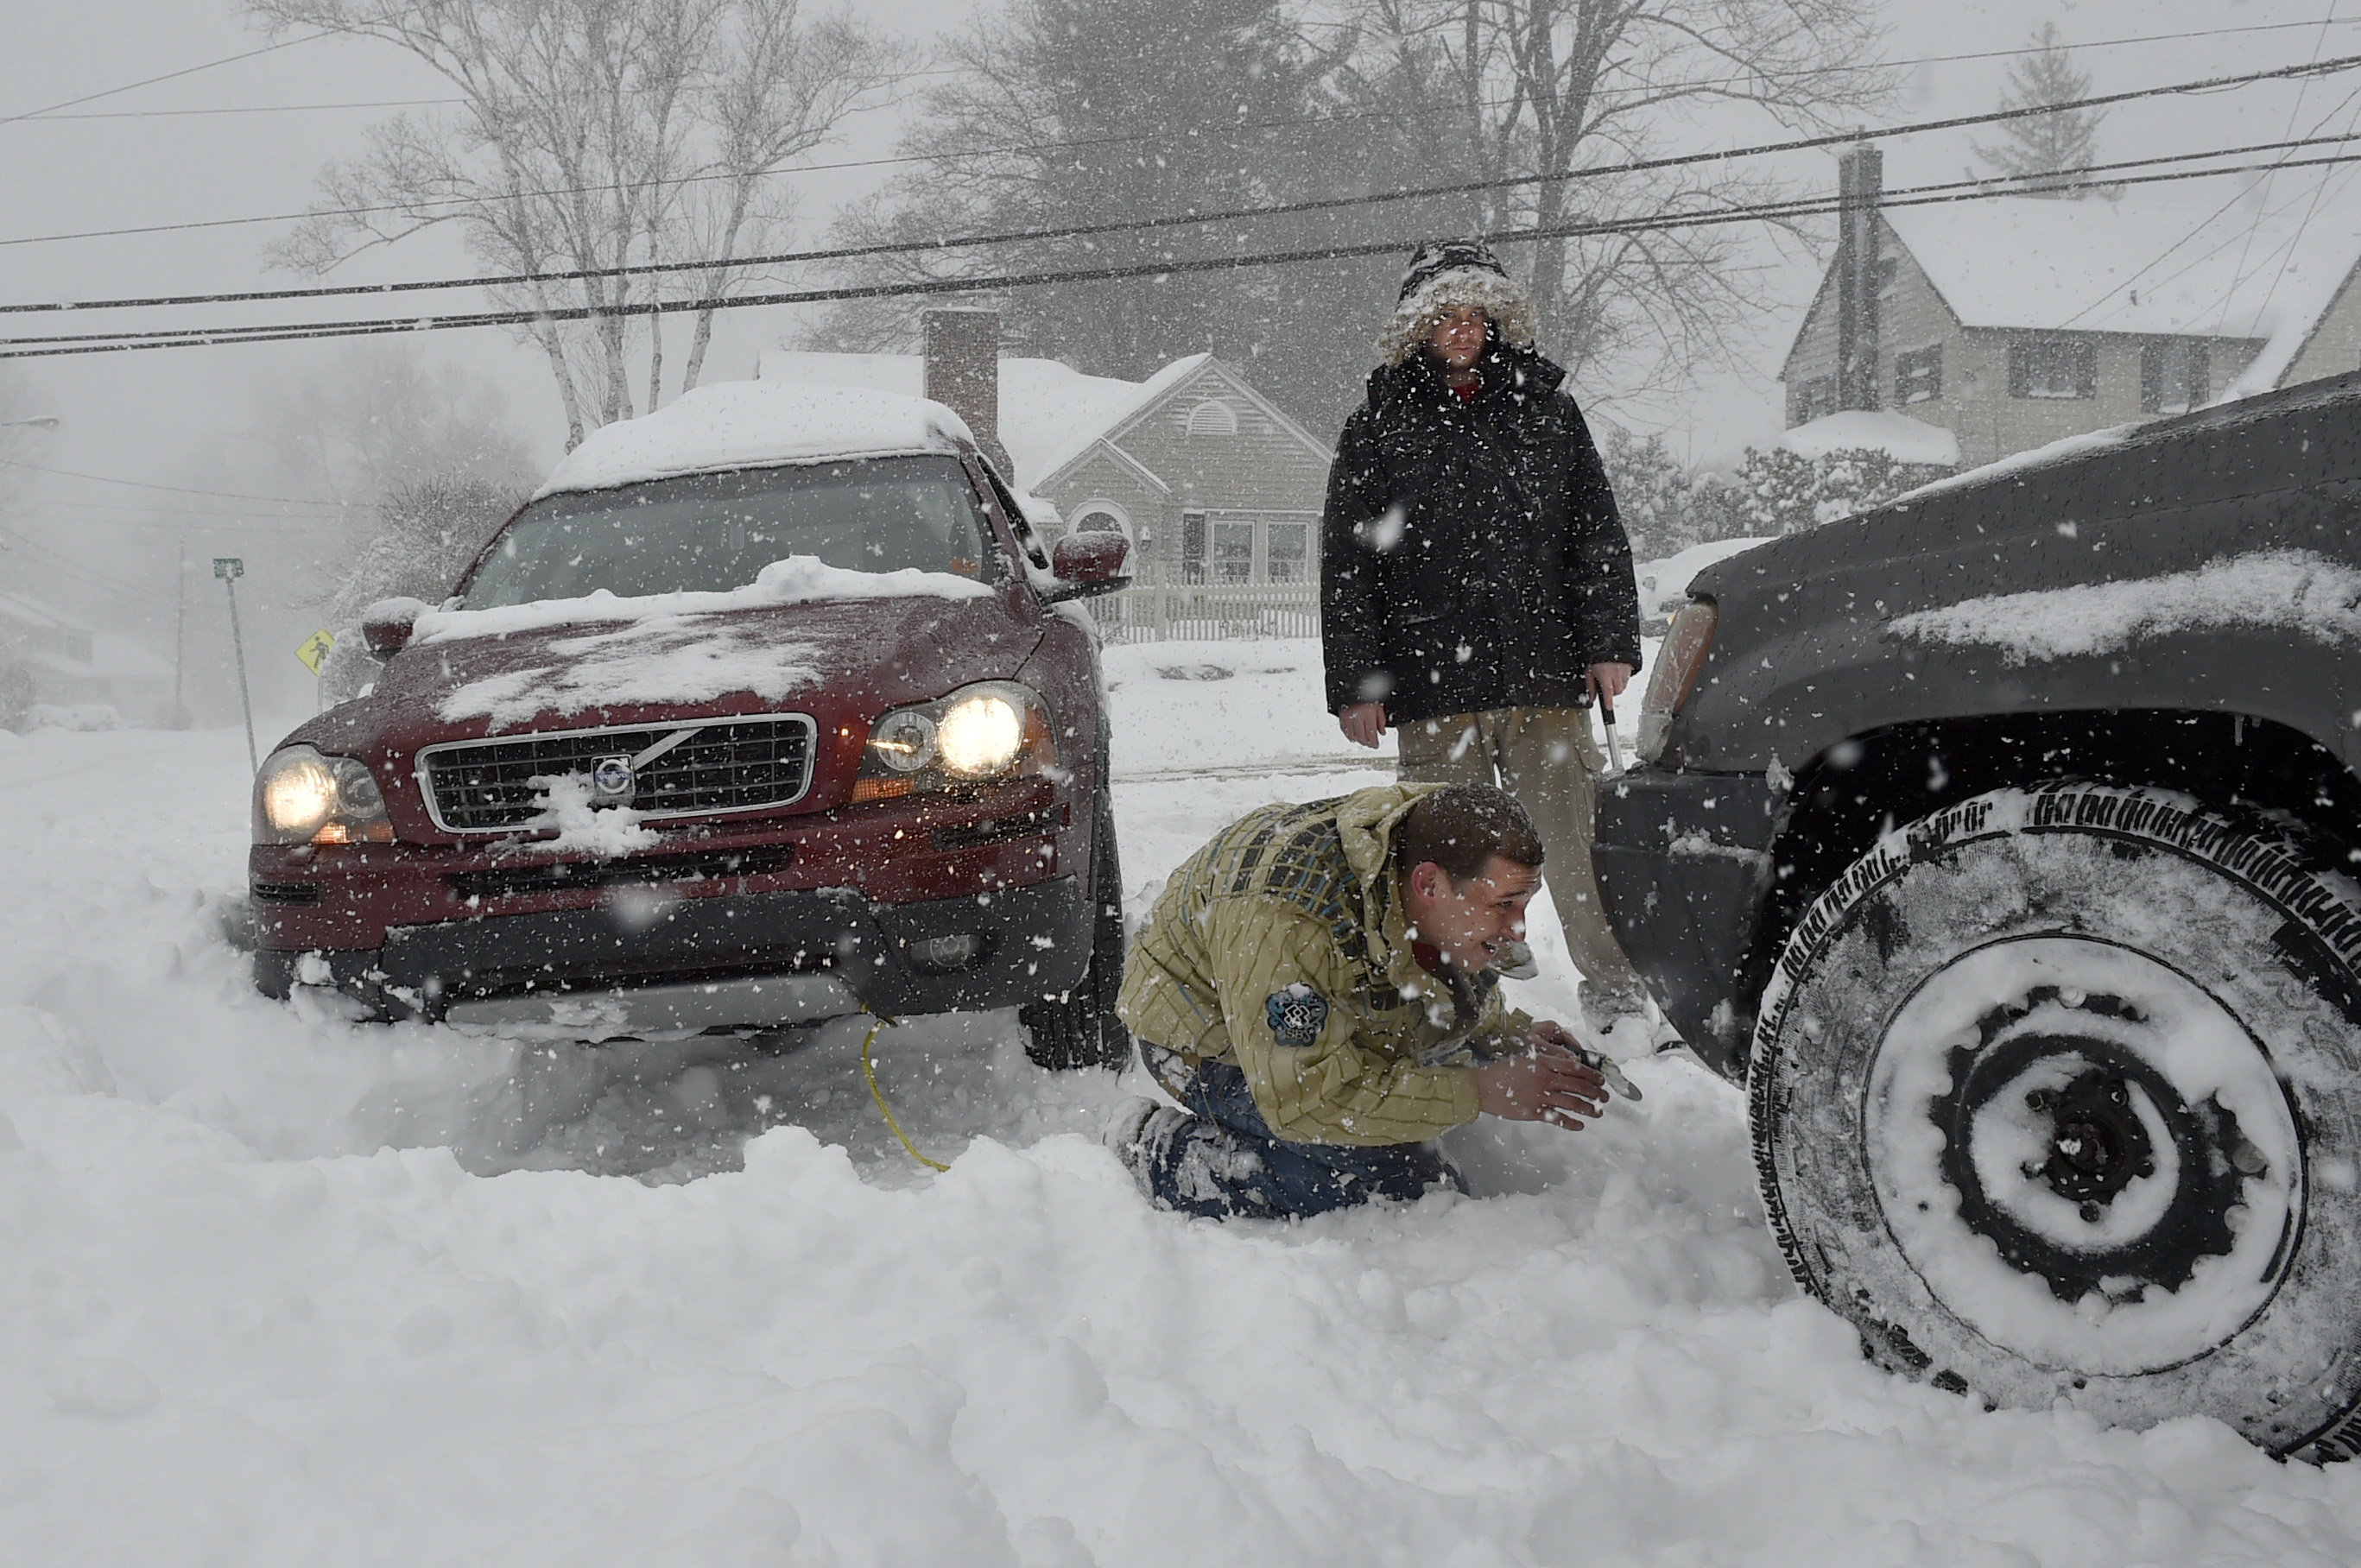 Nick Sinon looks for a place to attach his tow-strap to the front of his four wheel drive Jeep as he and Brian Brady try to help a stranded motorist get out of a snowbank in Bristol, Conn., on Feb. 9, 2017. (John Woike/Hartford Courant via AP)